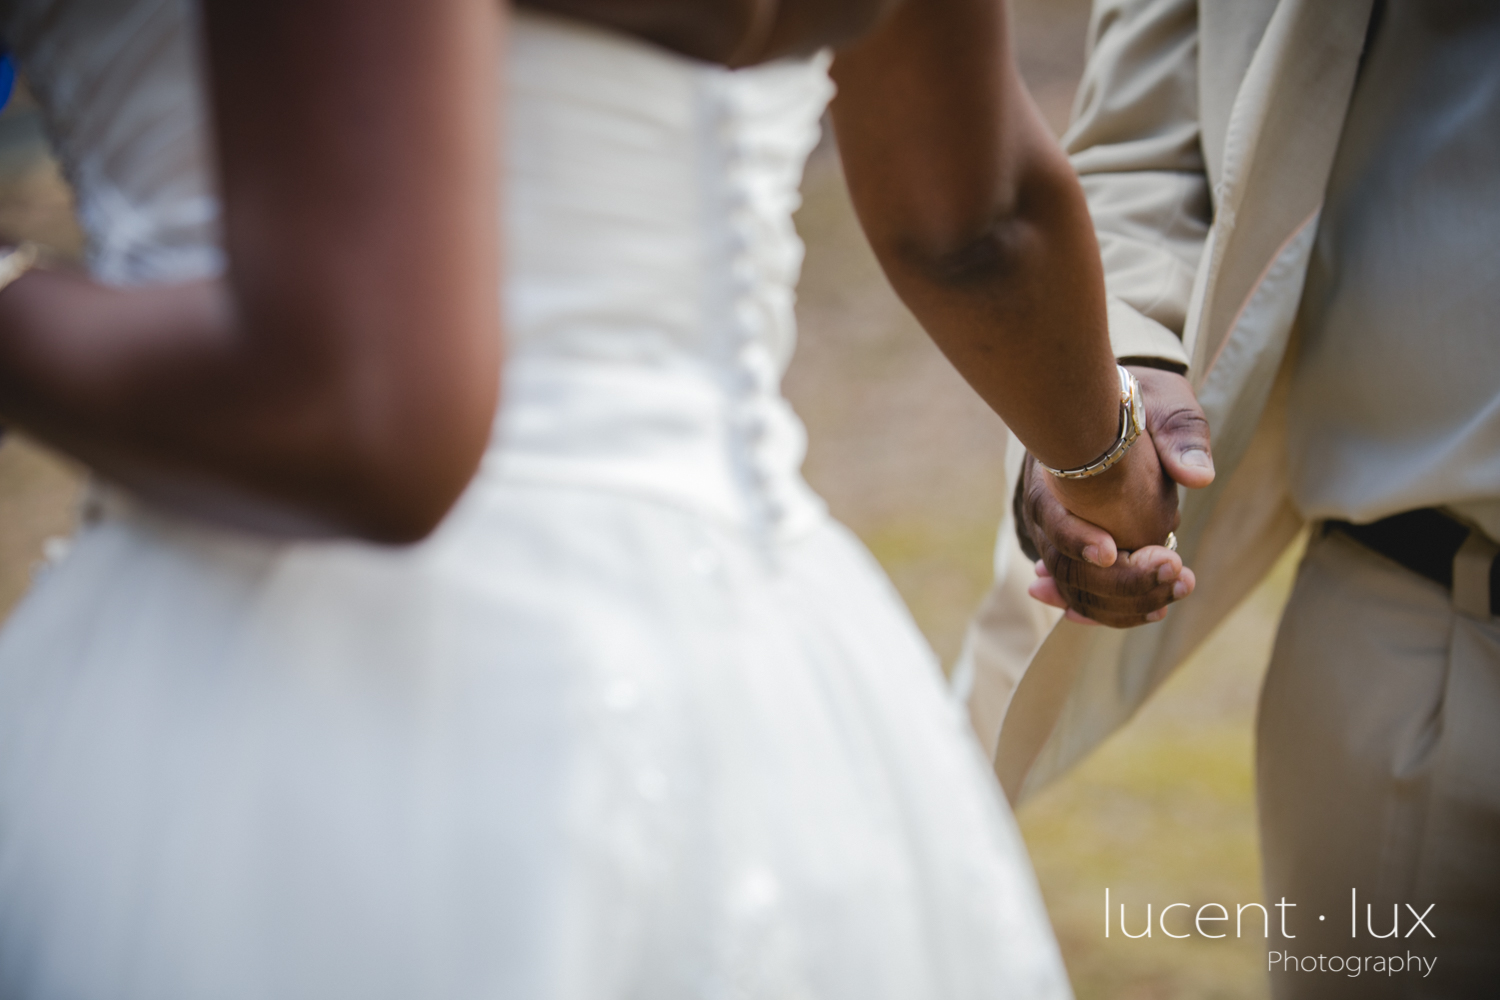 Harford_County_Courthouse_Bel_Air_Maryland_Wedding_Photographer_Maryland_Wedding_Photography-116.jpg